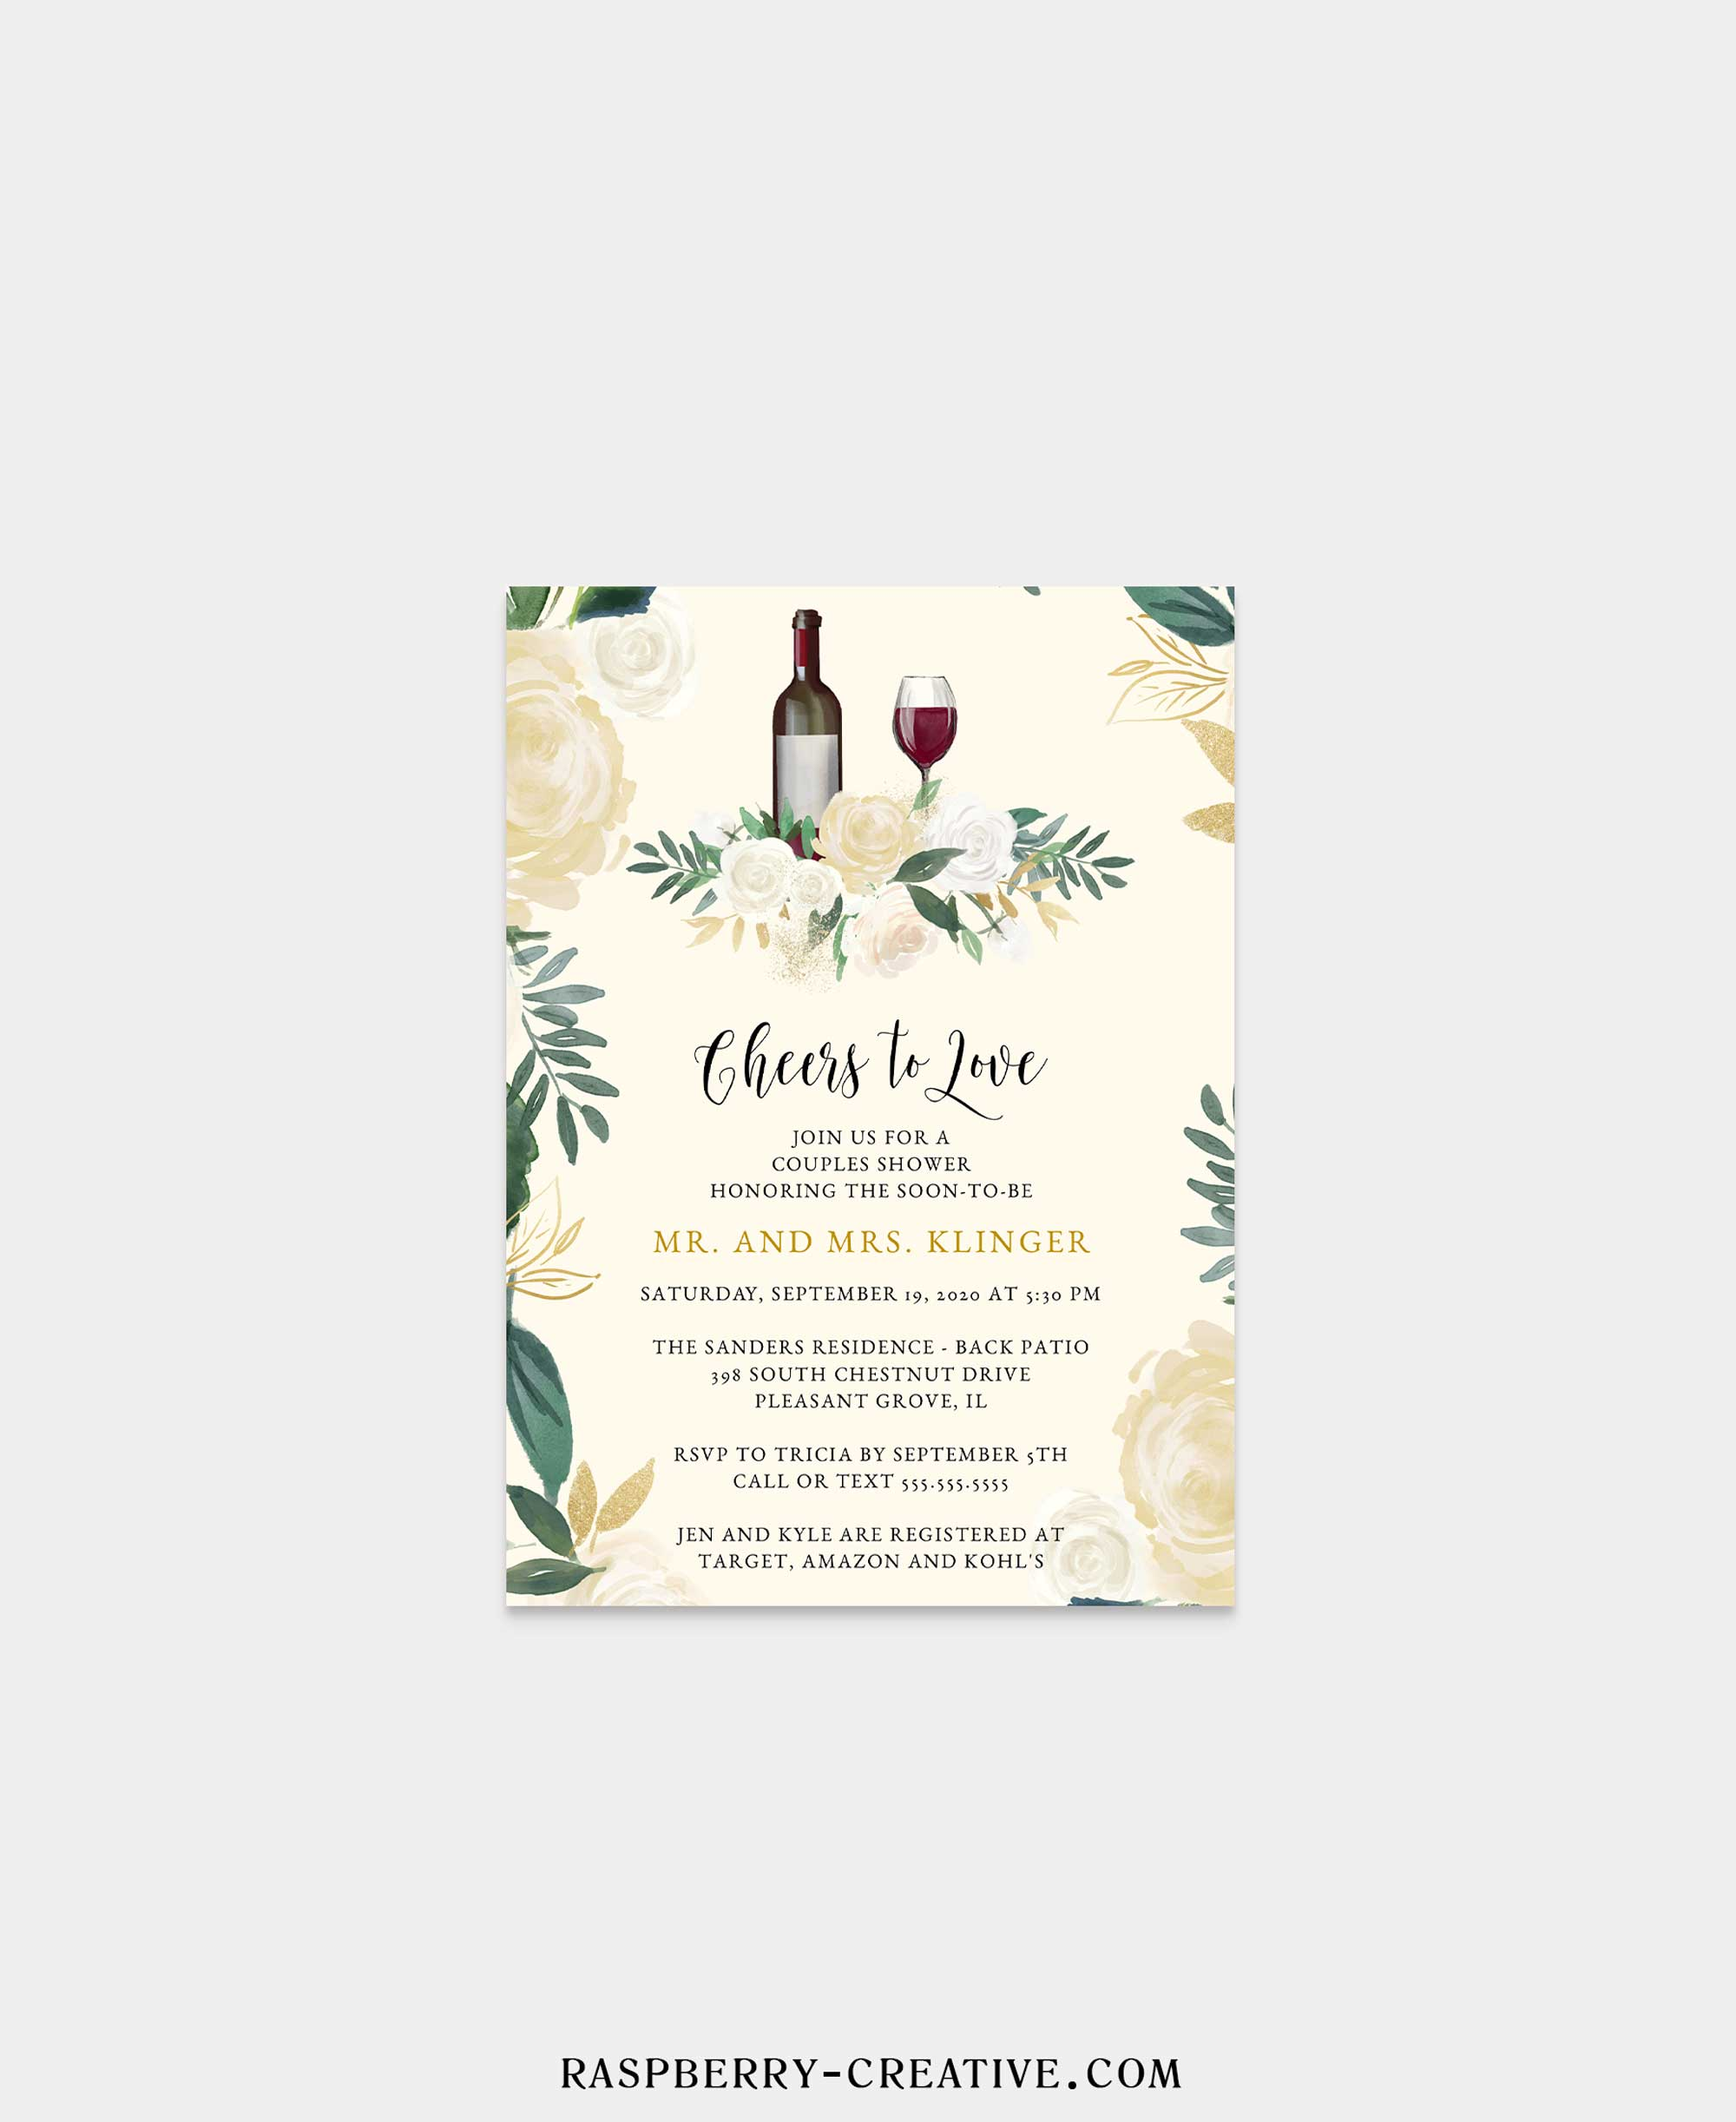 audrey-cheers-to-love-bridal-shower-invitation-1